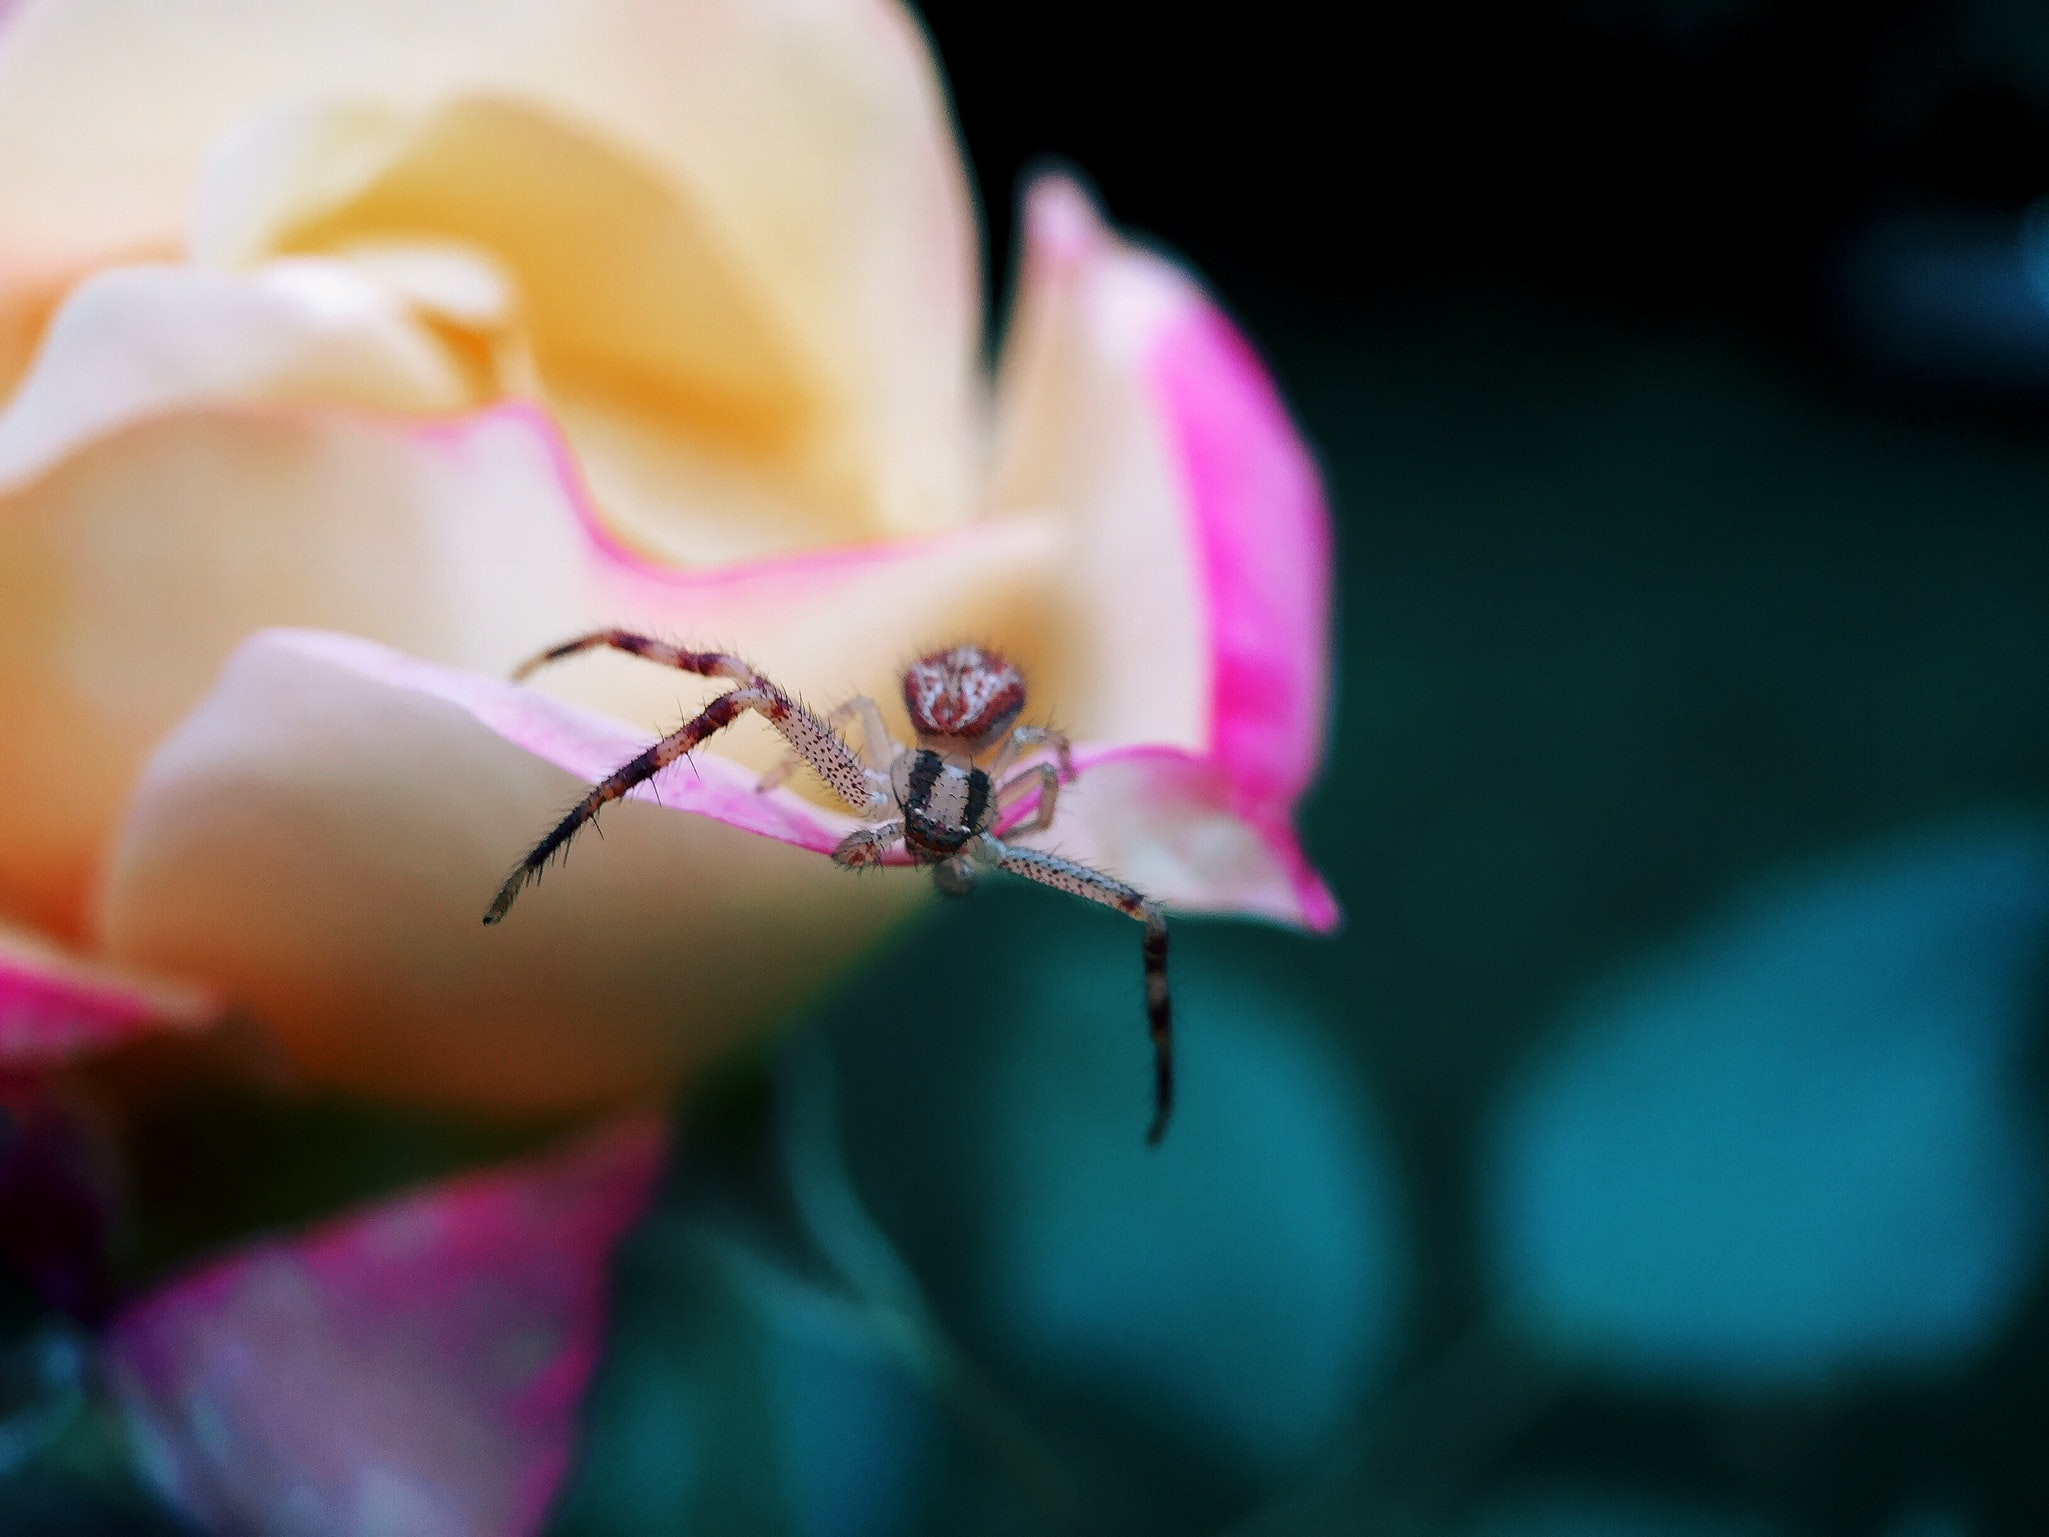 The macro view of a spider on a pink flower in Sainte-Anne-de-Bellevue, Quebec, Canada